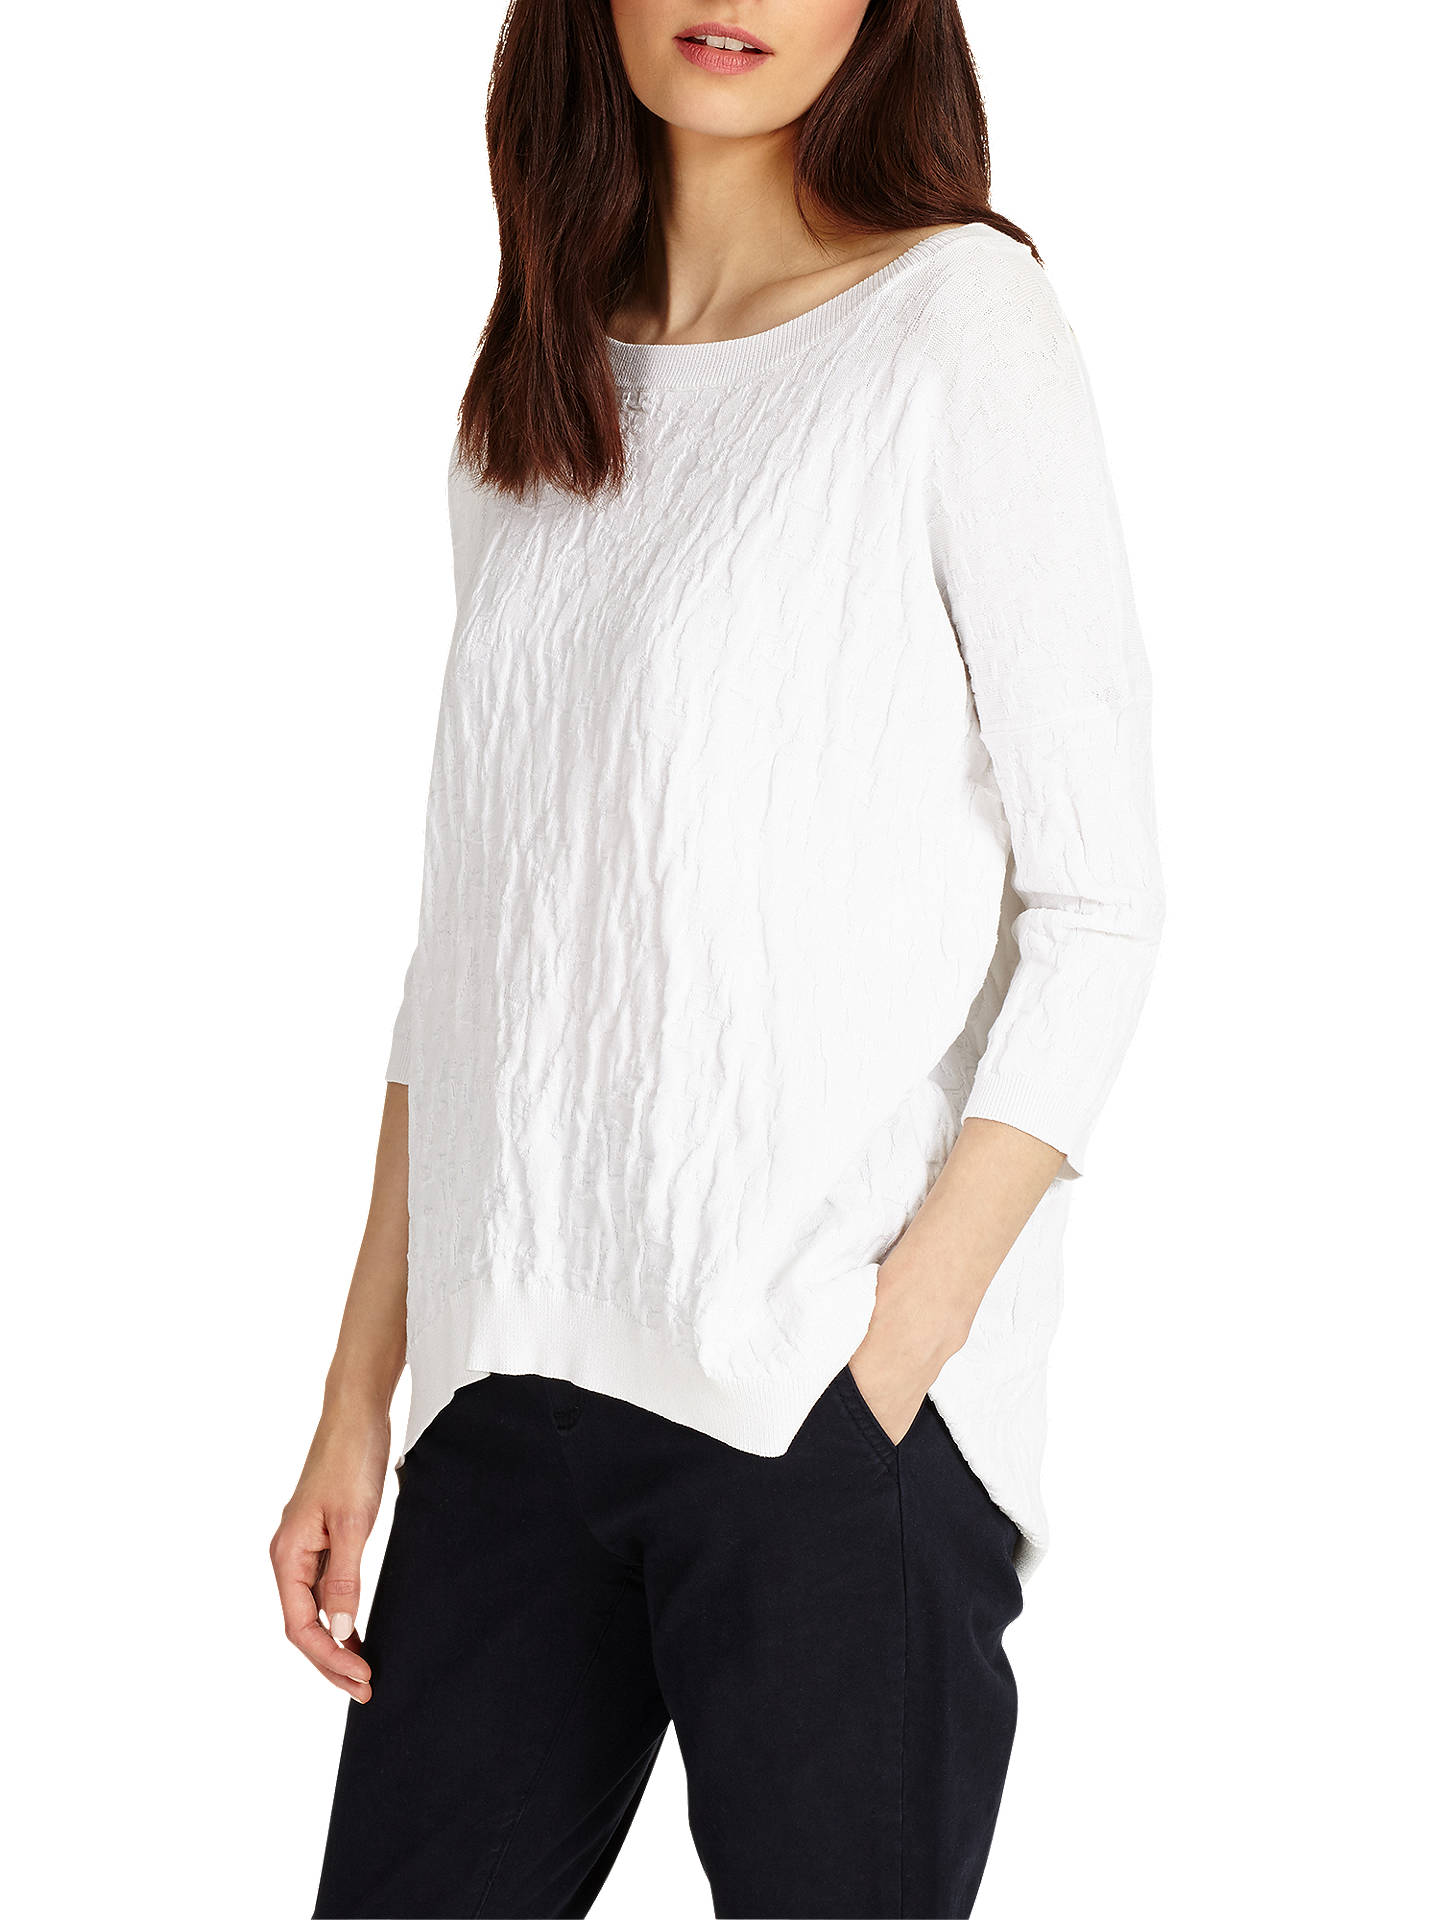 BuyPhase Eight Alecia Textured Knit Jumper, White, XS Online at johnlewis.com